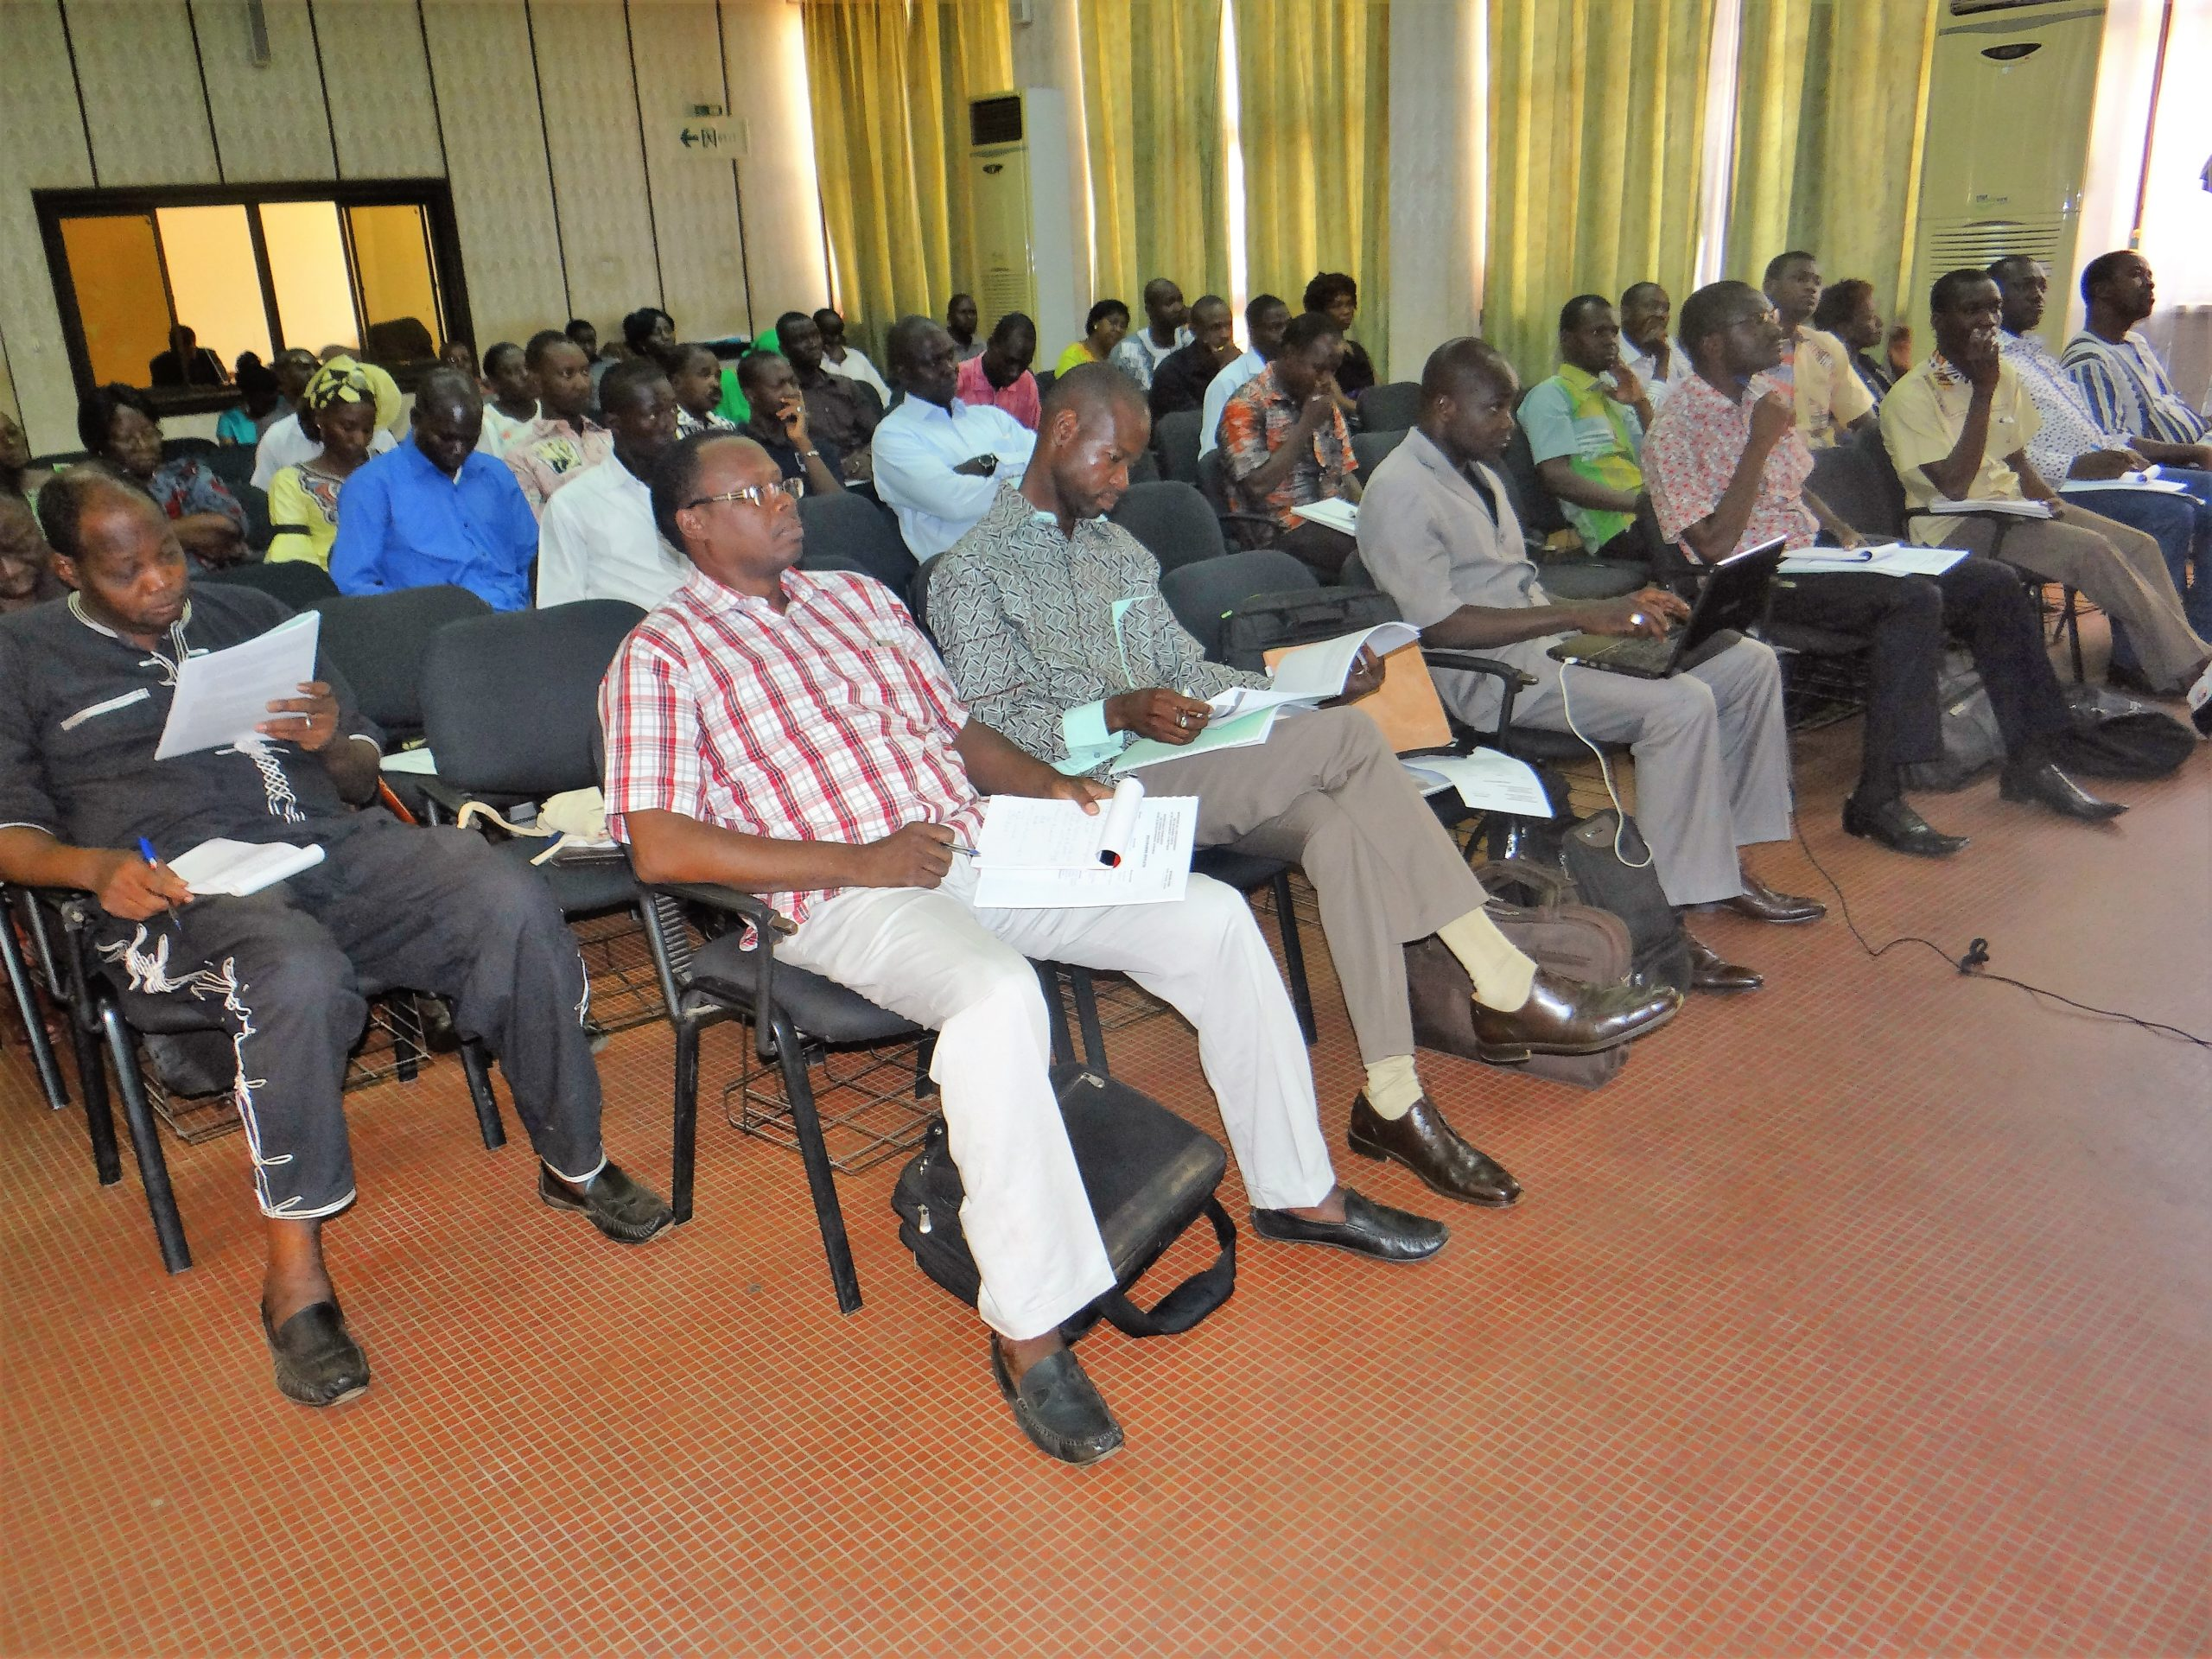 A view of the participants during the workshop proceedings